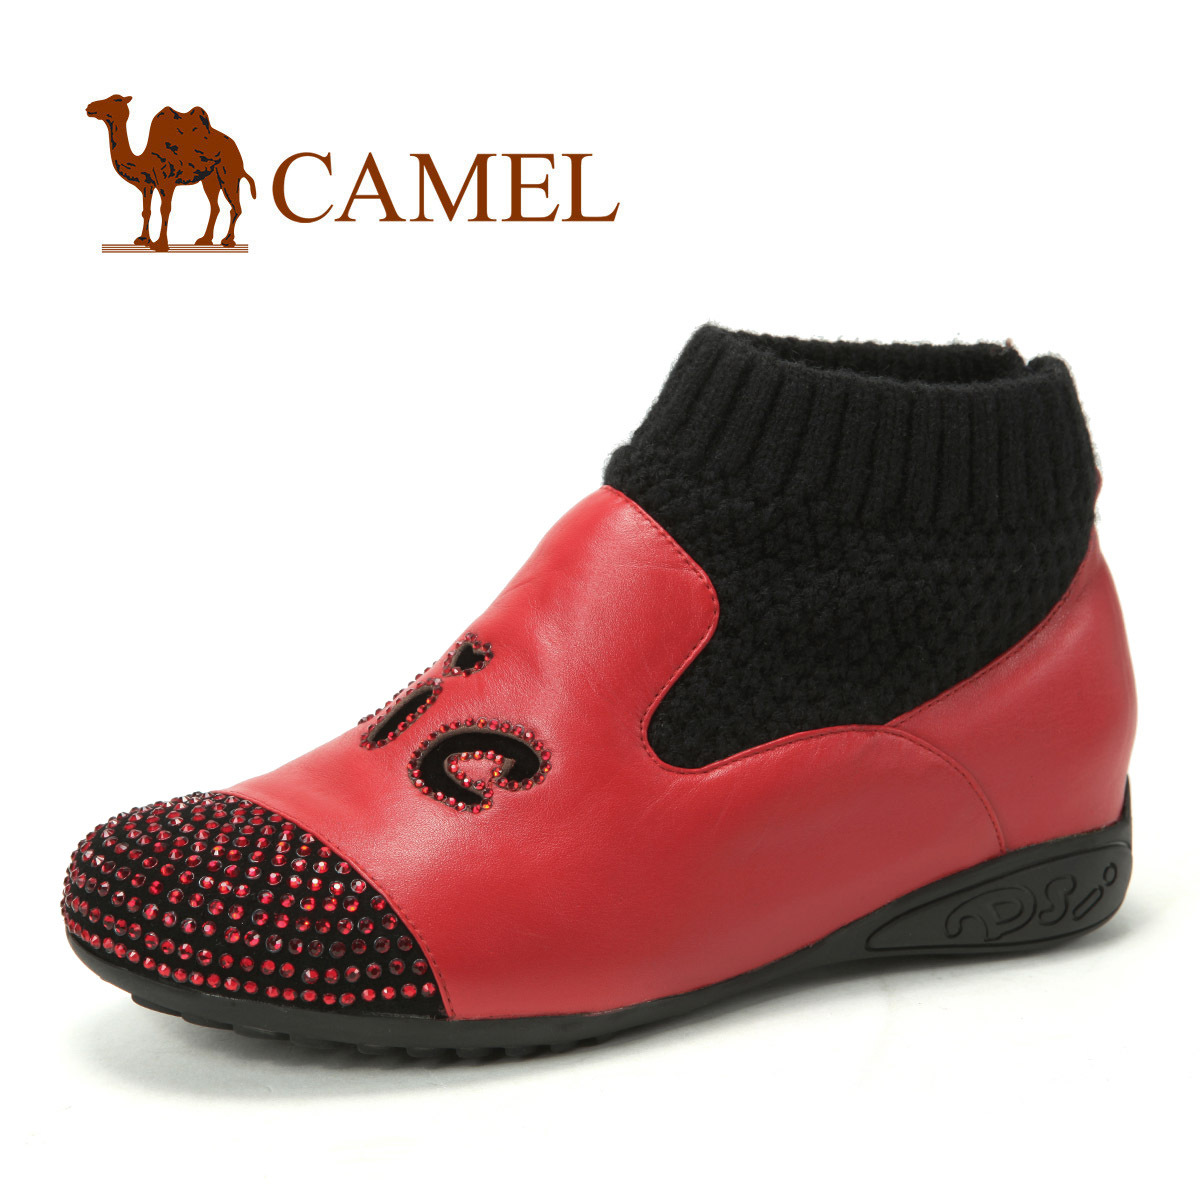 camel colored heels promotion shopping for